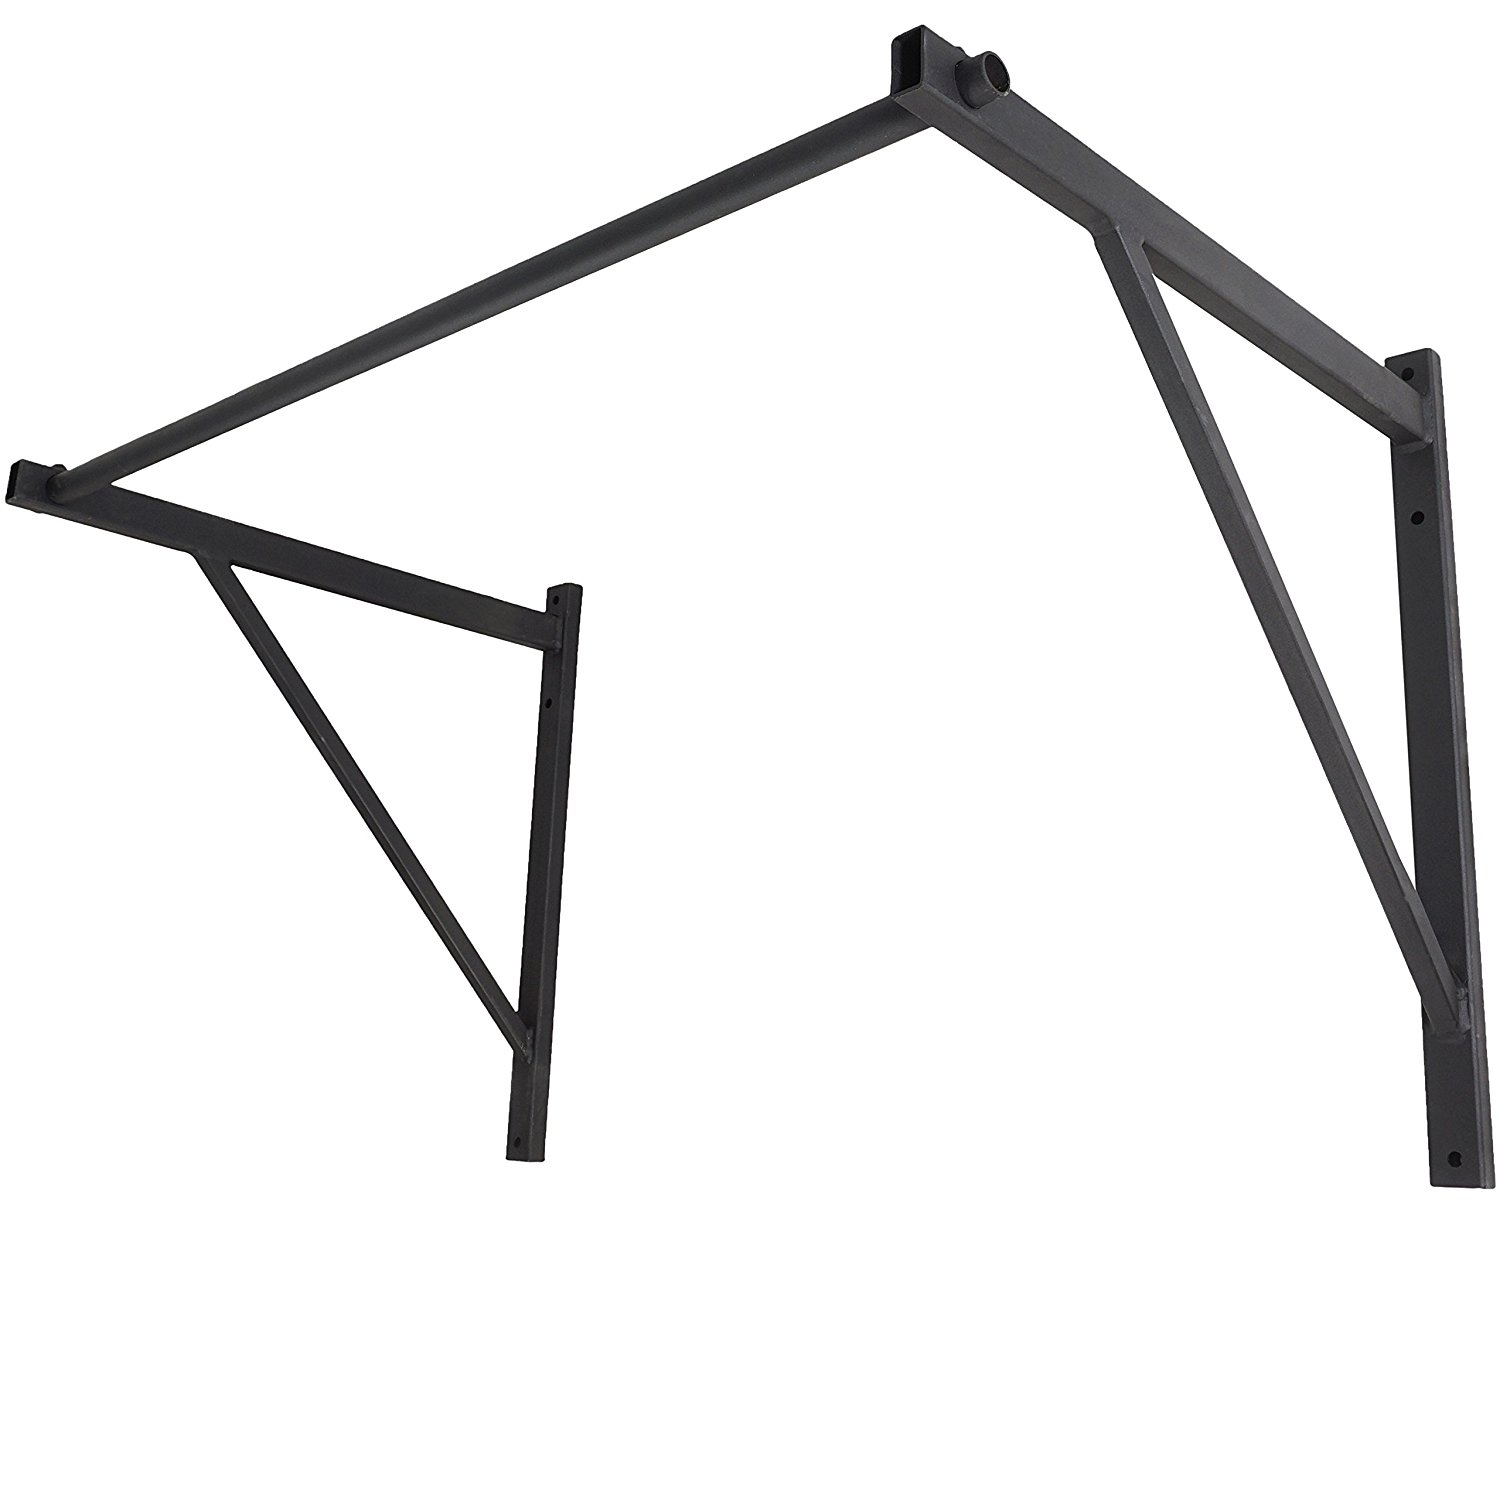 Titan Fitness Wall Mounted Pull Up Bar Review - Slant